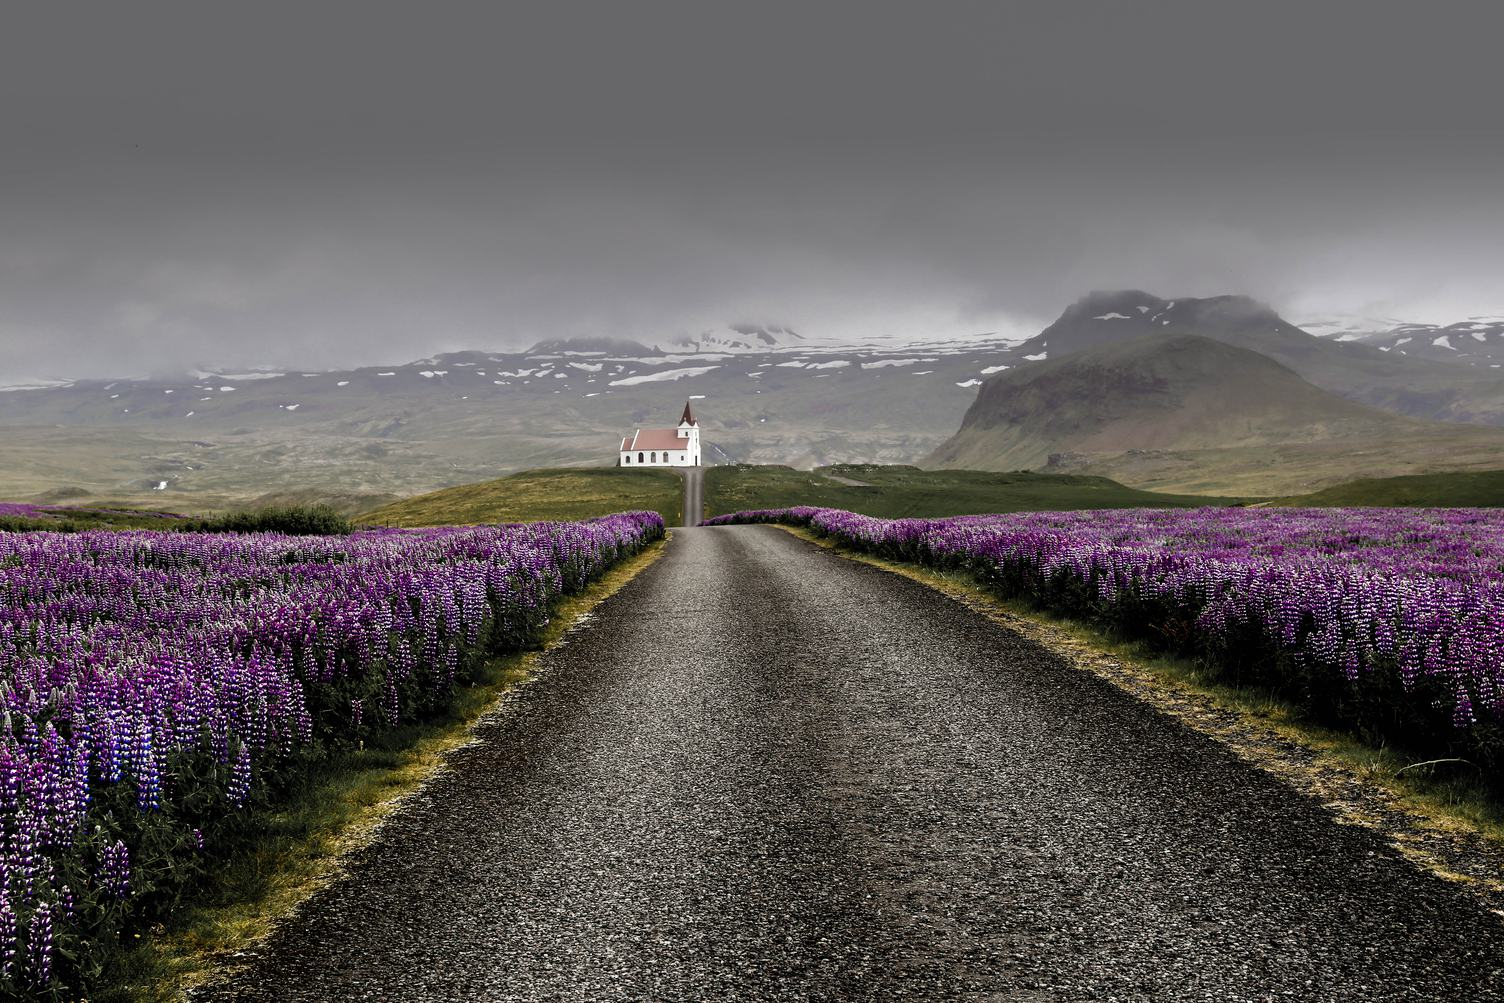 Field of Violet Lupine Flowers Near Road to Ingjaldsholl Church, Iceland